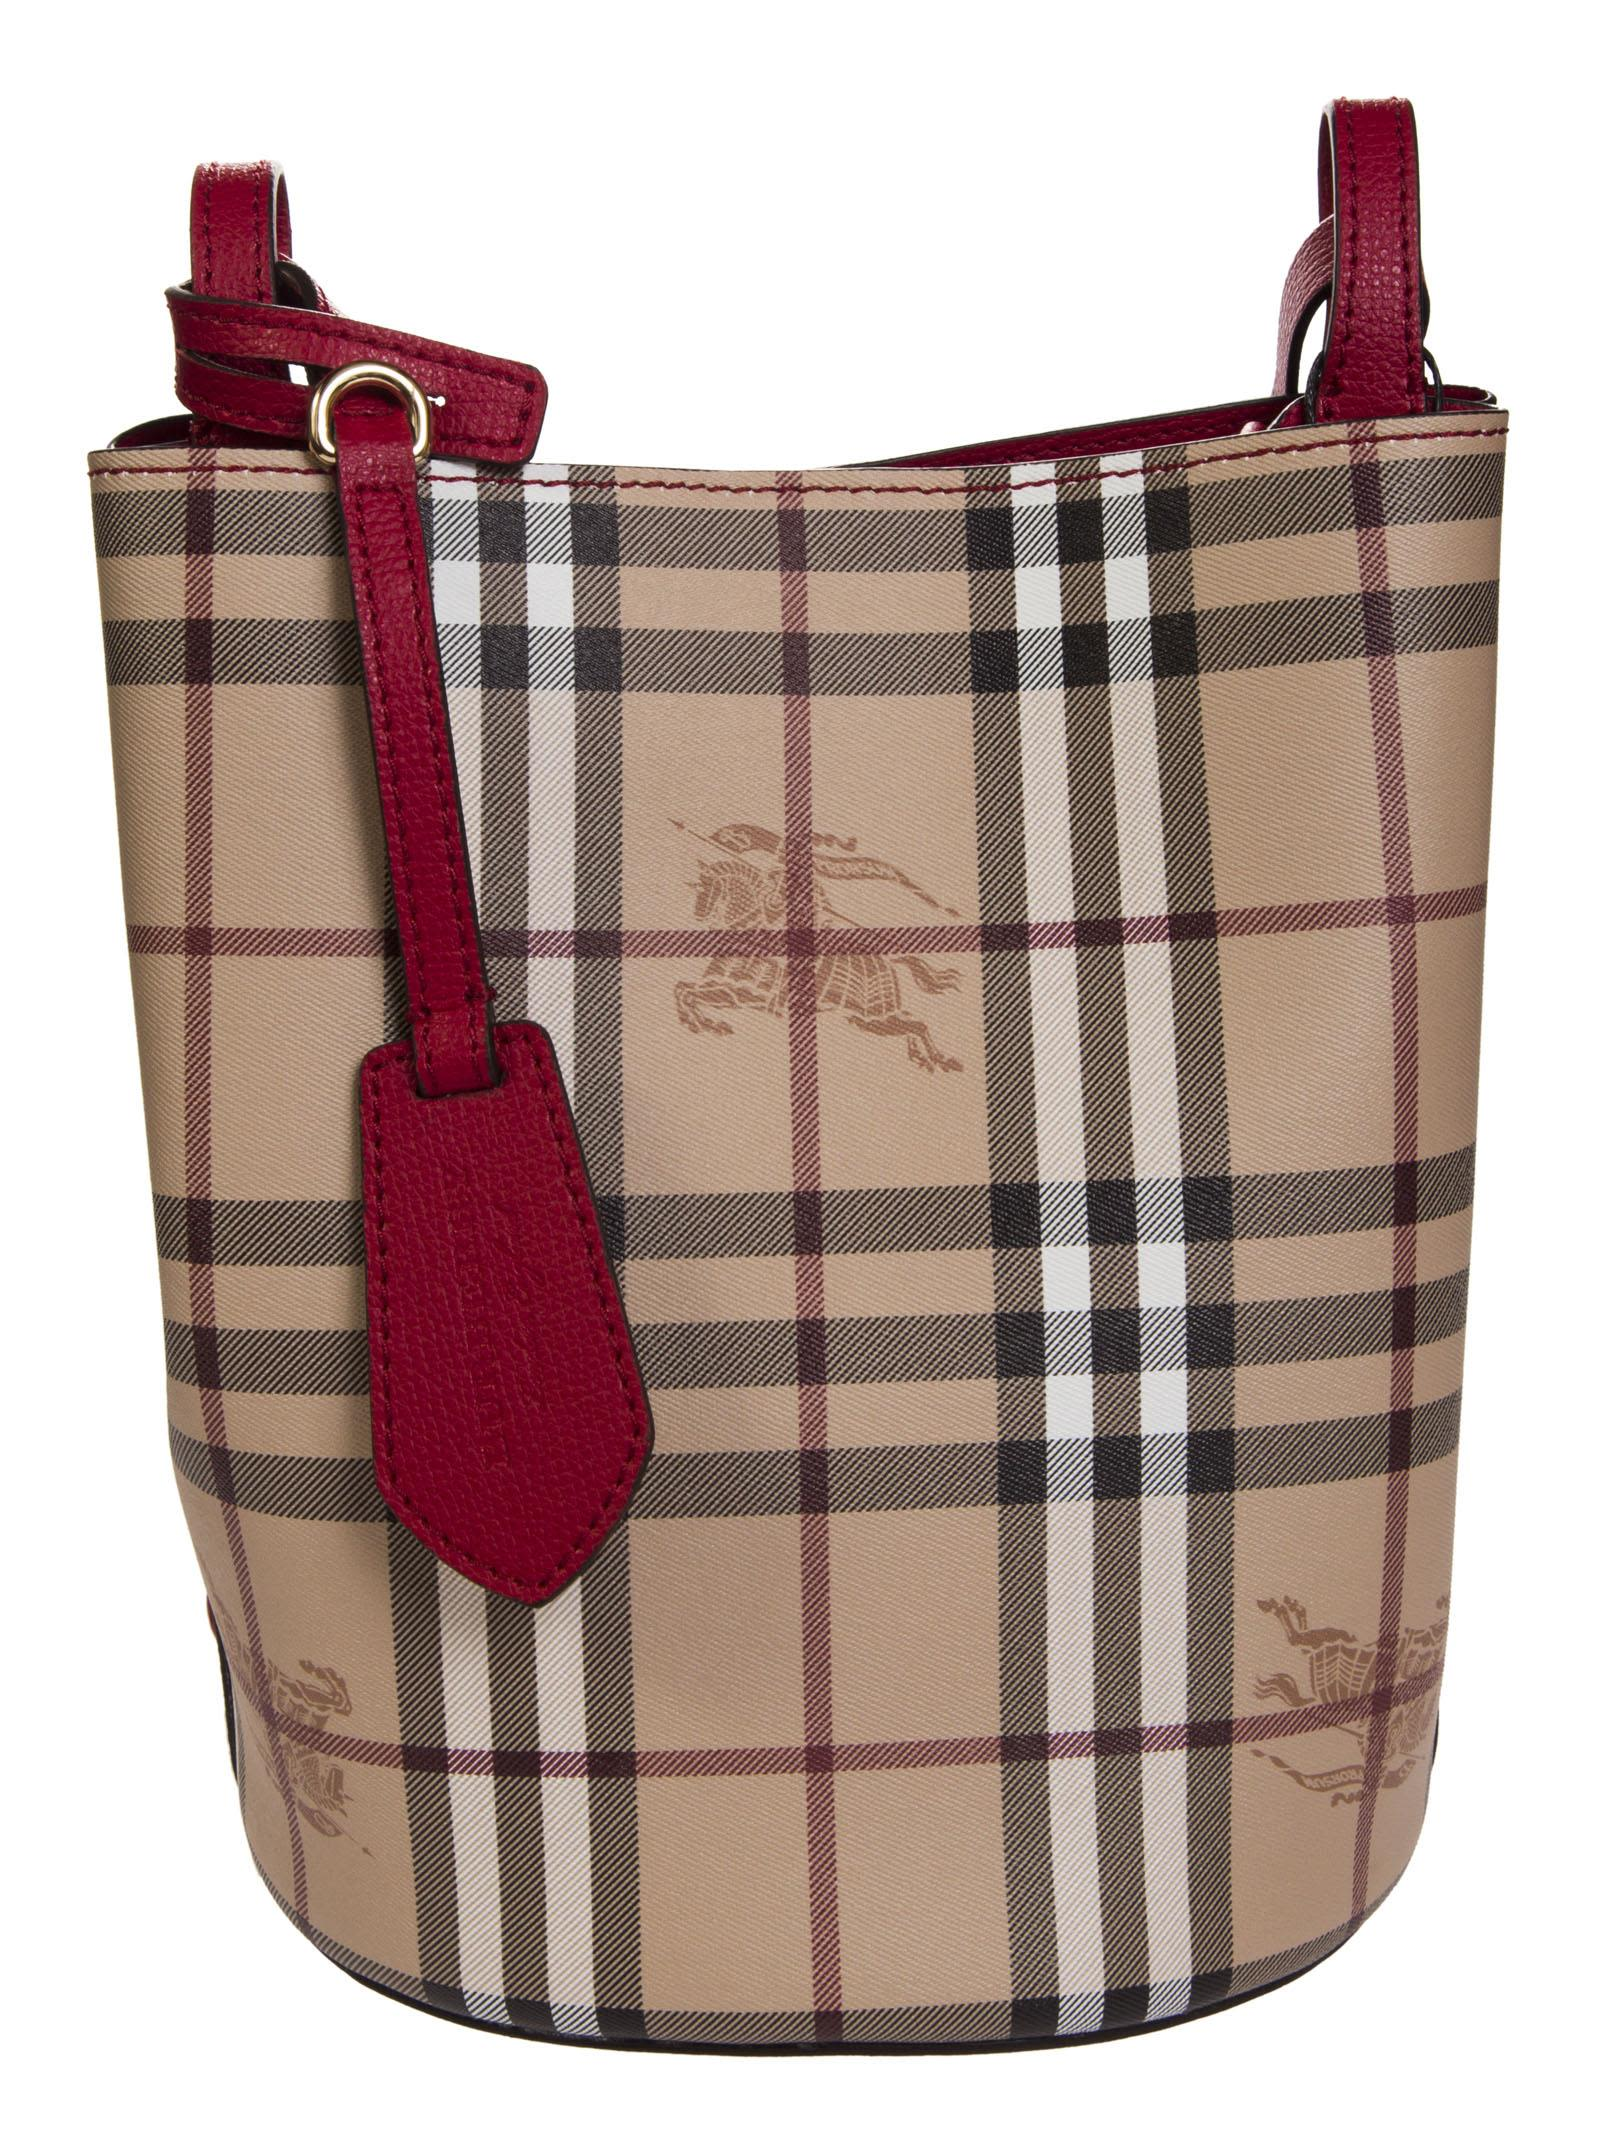 81a04cfea9b8 BURBERRY SMALL HAYMARKET CHECKED BUCKET BAG